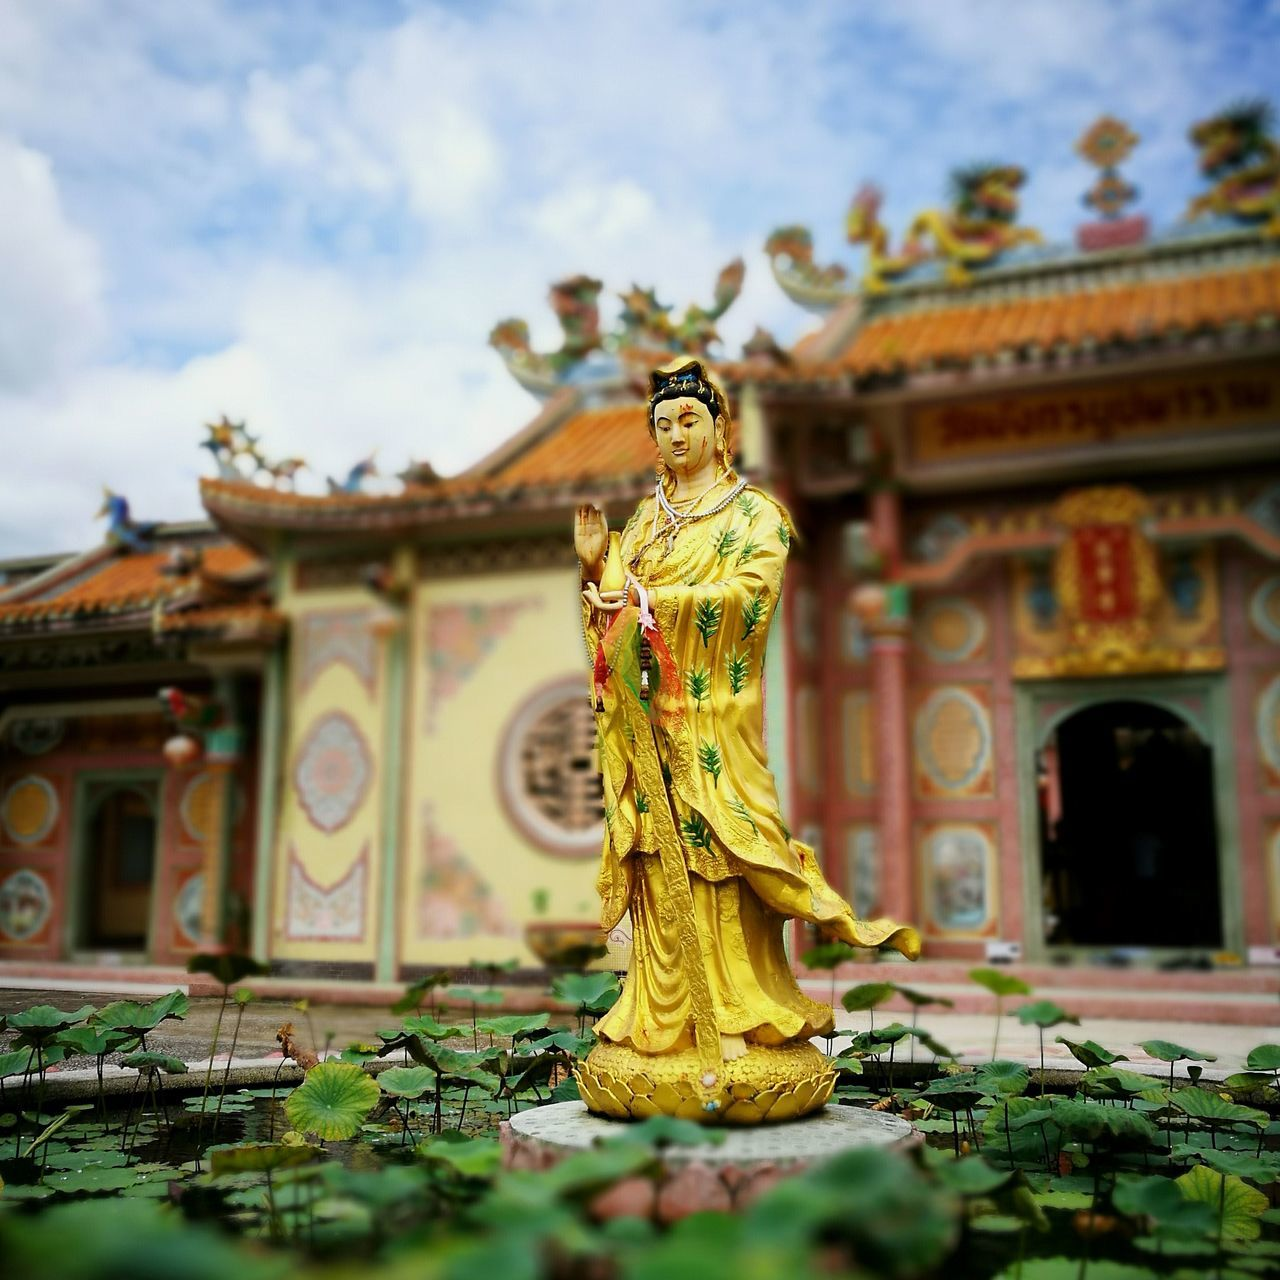 Goddess Goddessofmeecy Goddess Of Mercy Chinese Temple Chinese Architecture Temple Temple - Building Templephotography Temple Architecture Peaceful Peaceful View Peaceful Place